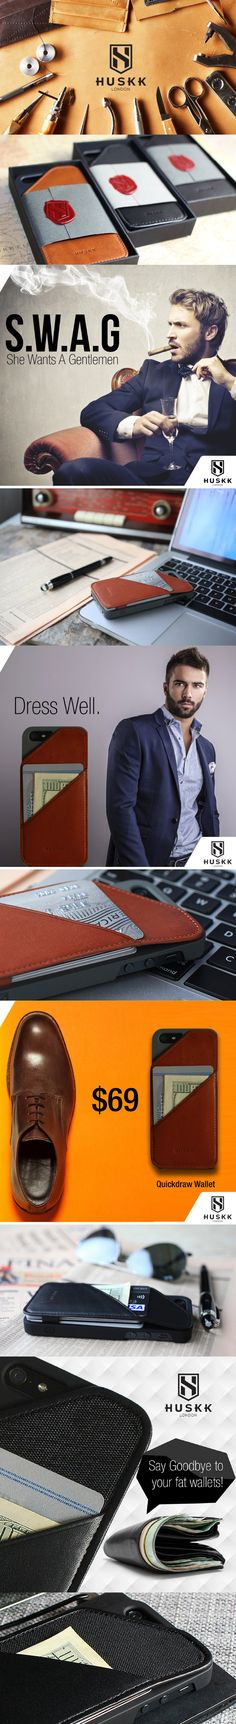 ⭐️⭐️⭐Need to get this now!! This would be perfect for a father's day gift and for a man with swag!! Click to buy NOW! iPhone 6 Plus Wallet Case Reliable Durable by @Huskk in collaboration with JuliesElegantCrafts⭐️⭐️⭐️